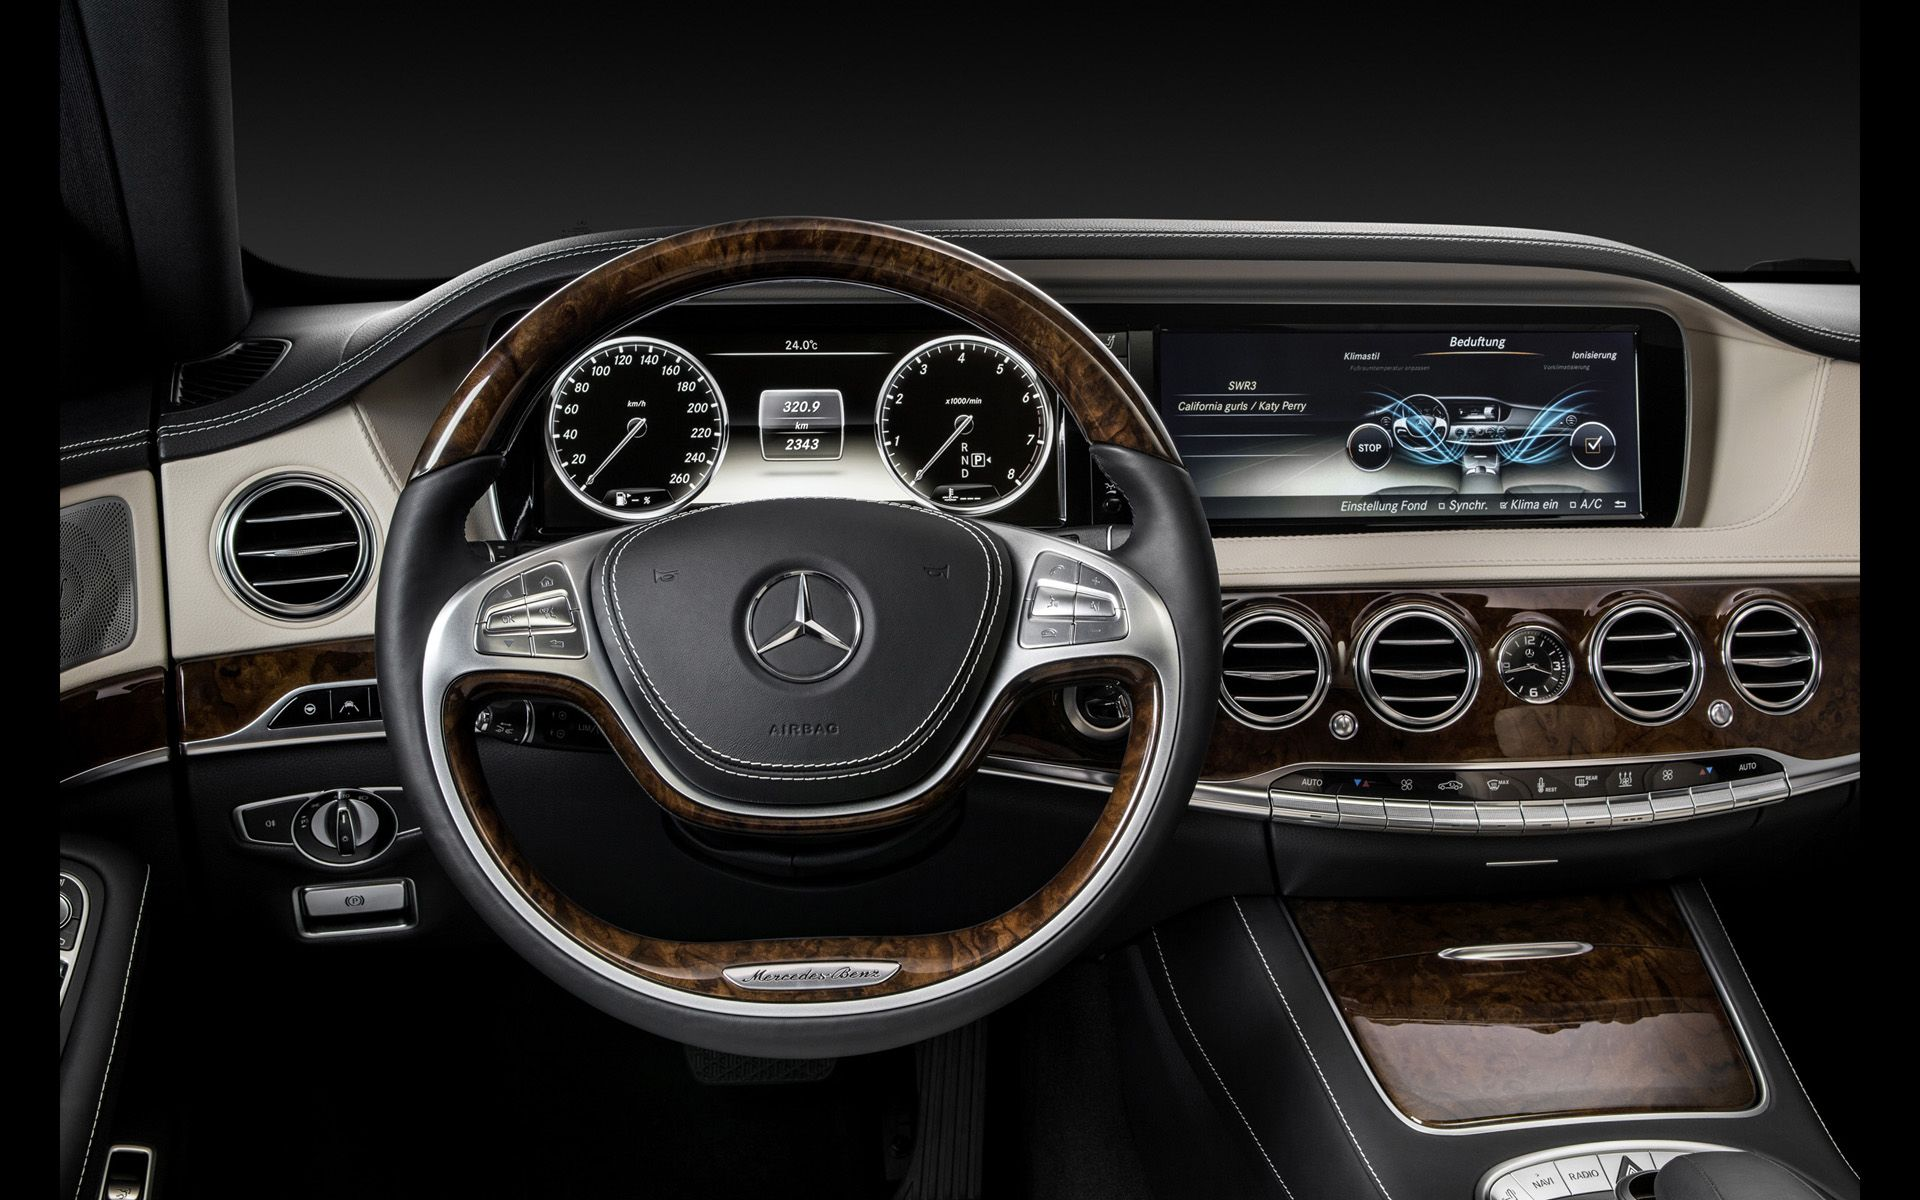 2013 S Class Interior With Images Mercedes S Class Mercedes